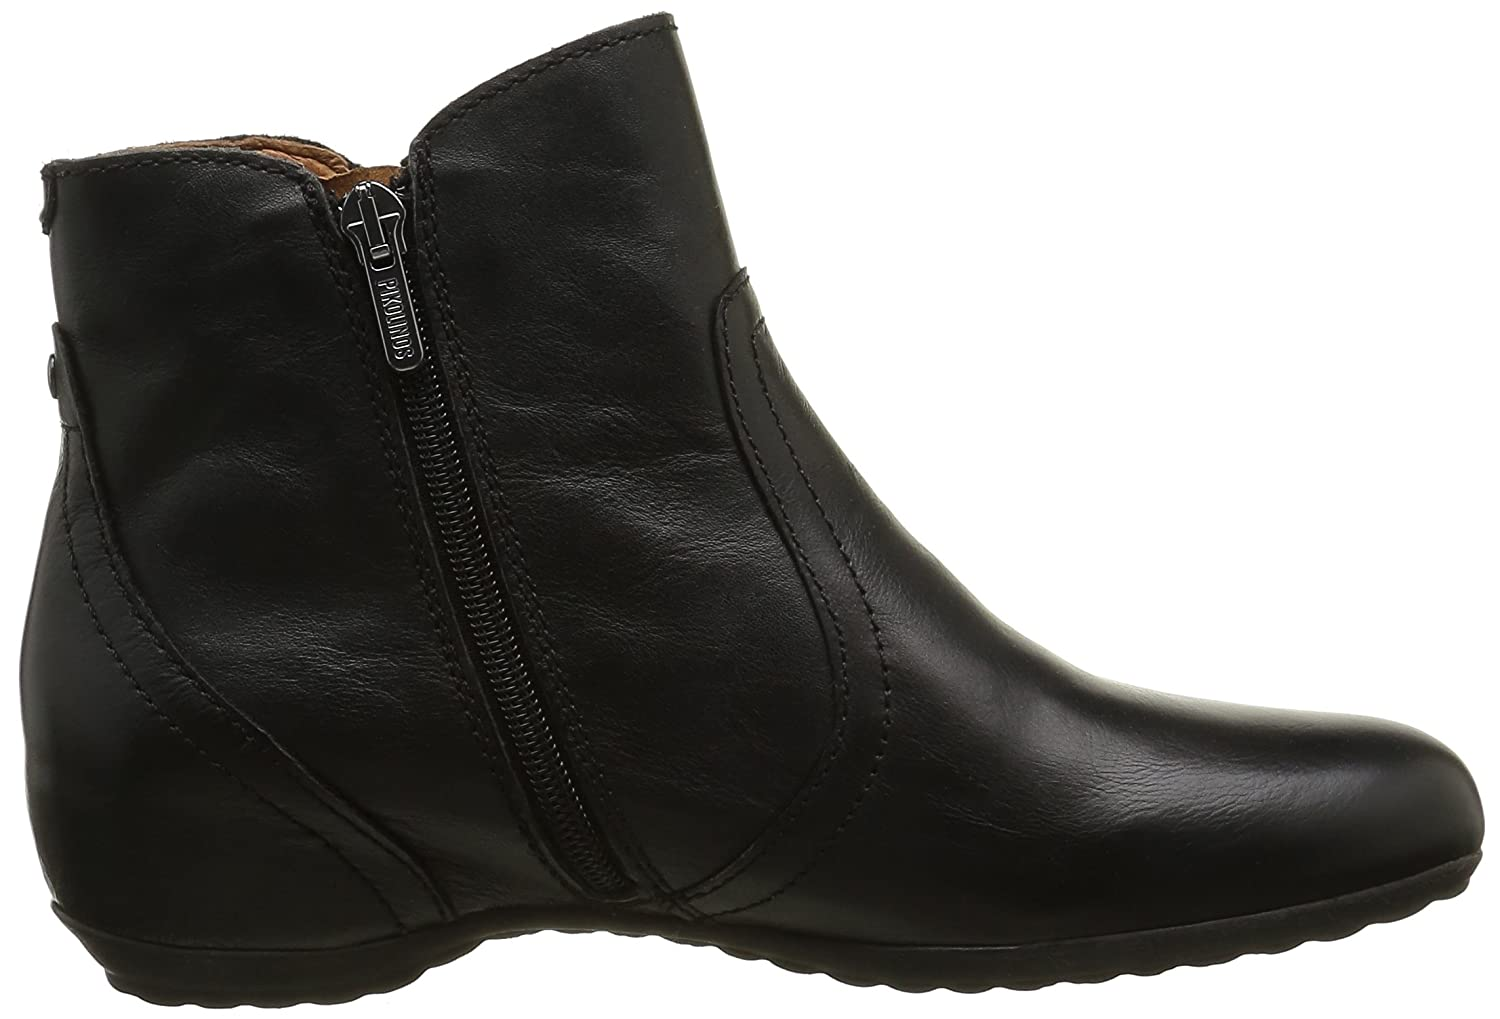 Womens Venezia 968_i17 Boots Pikolinos Free Shipping Factory Outlet Best Sale Cheap Online Best Online Many Kinds Of 0czzTq